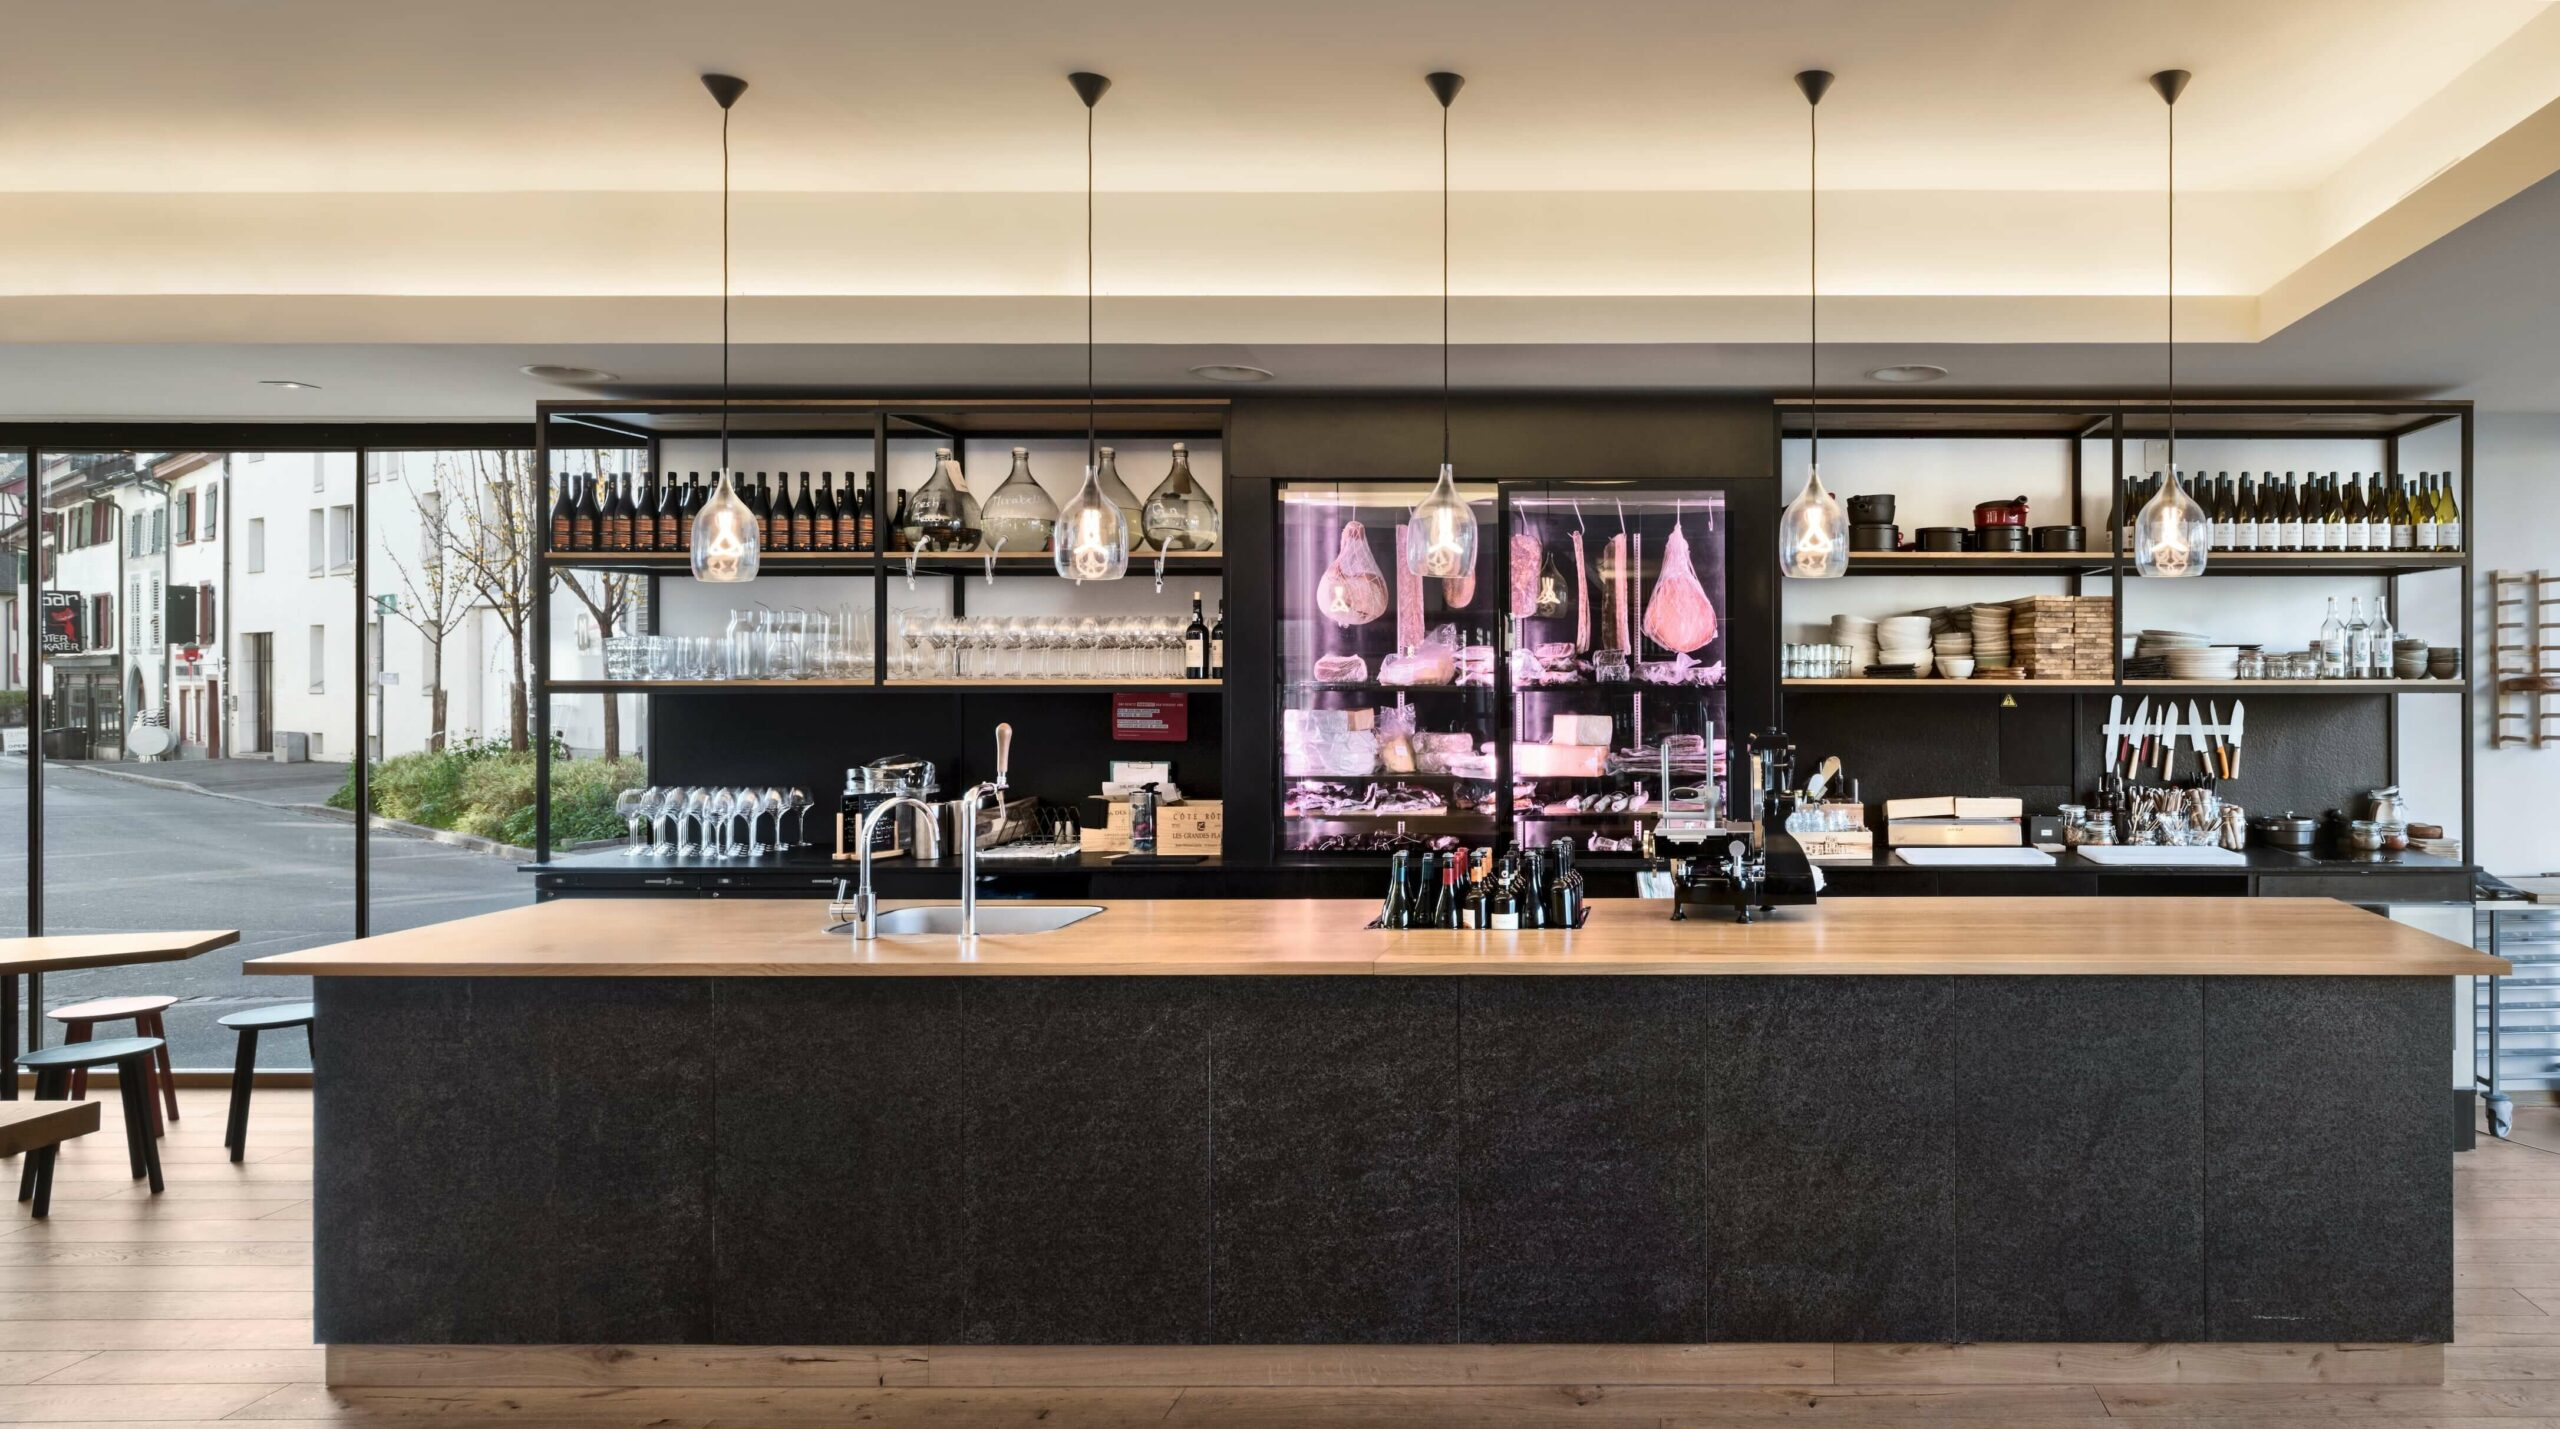 tacave Basel design is reshaped thanks to architecture and hospitality concepts